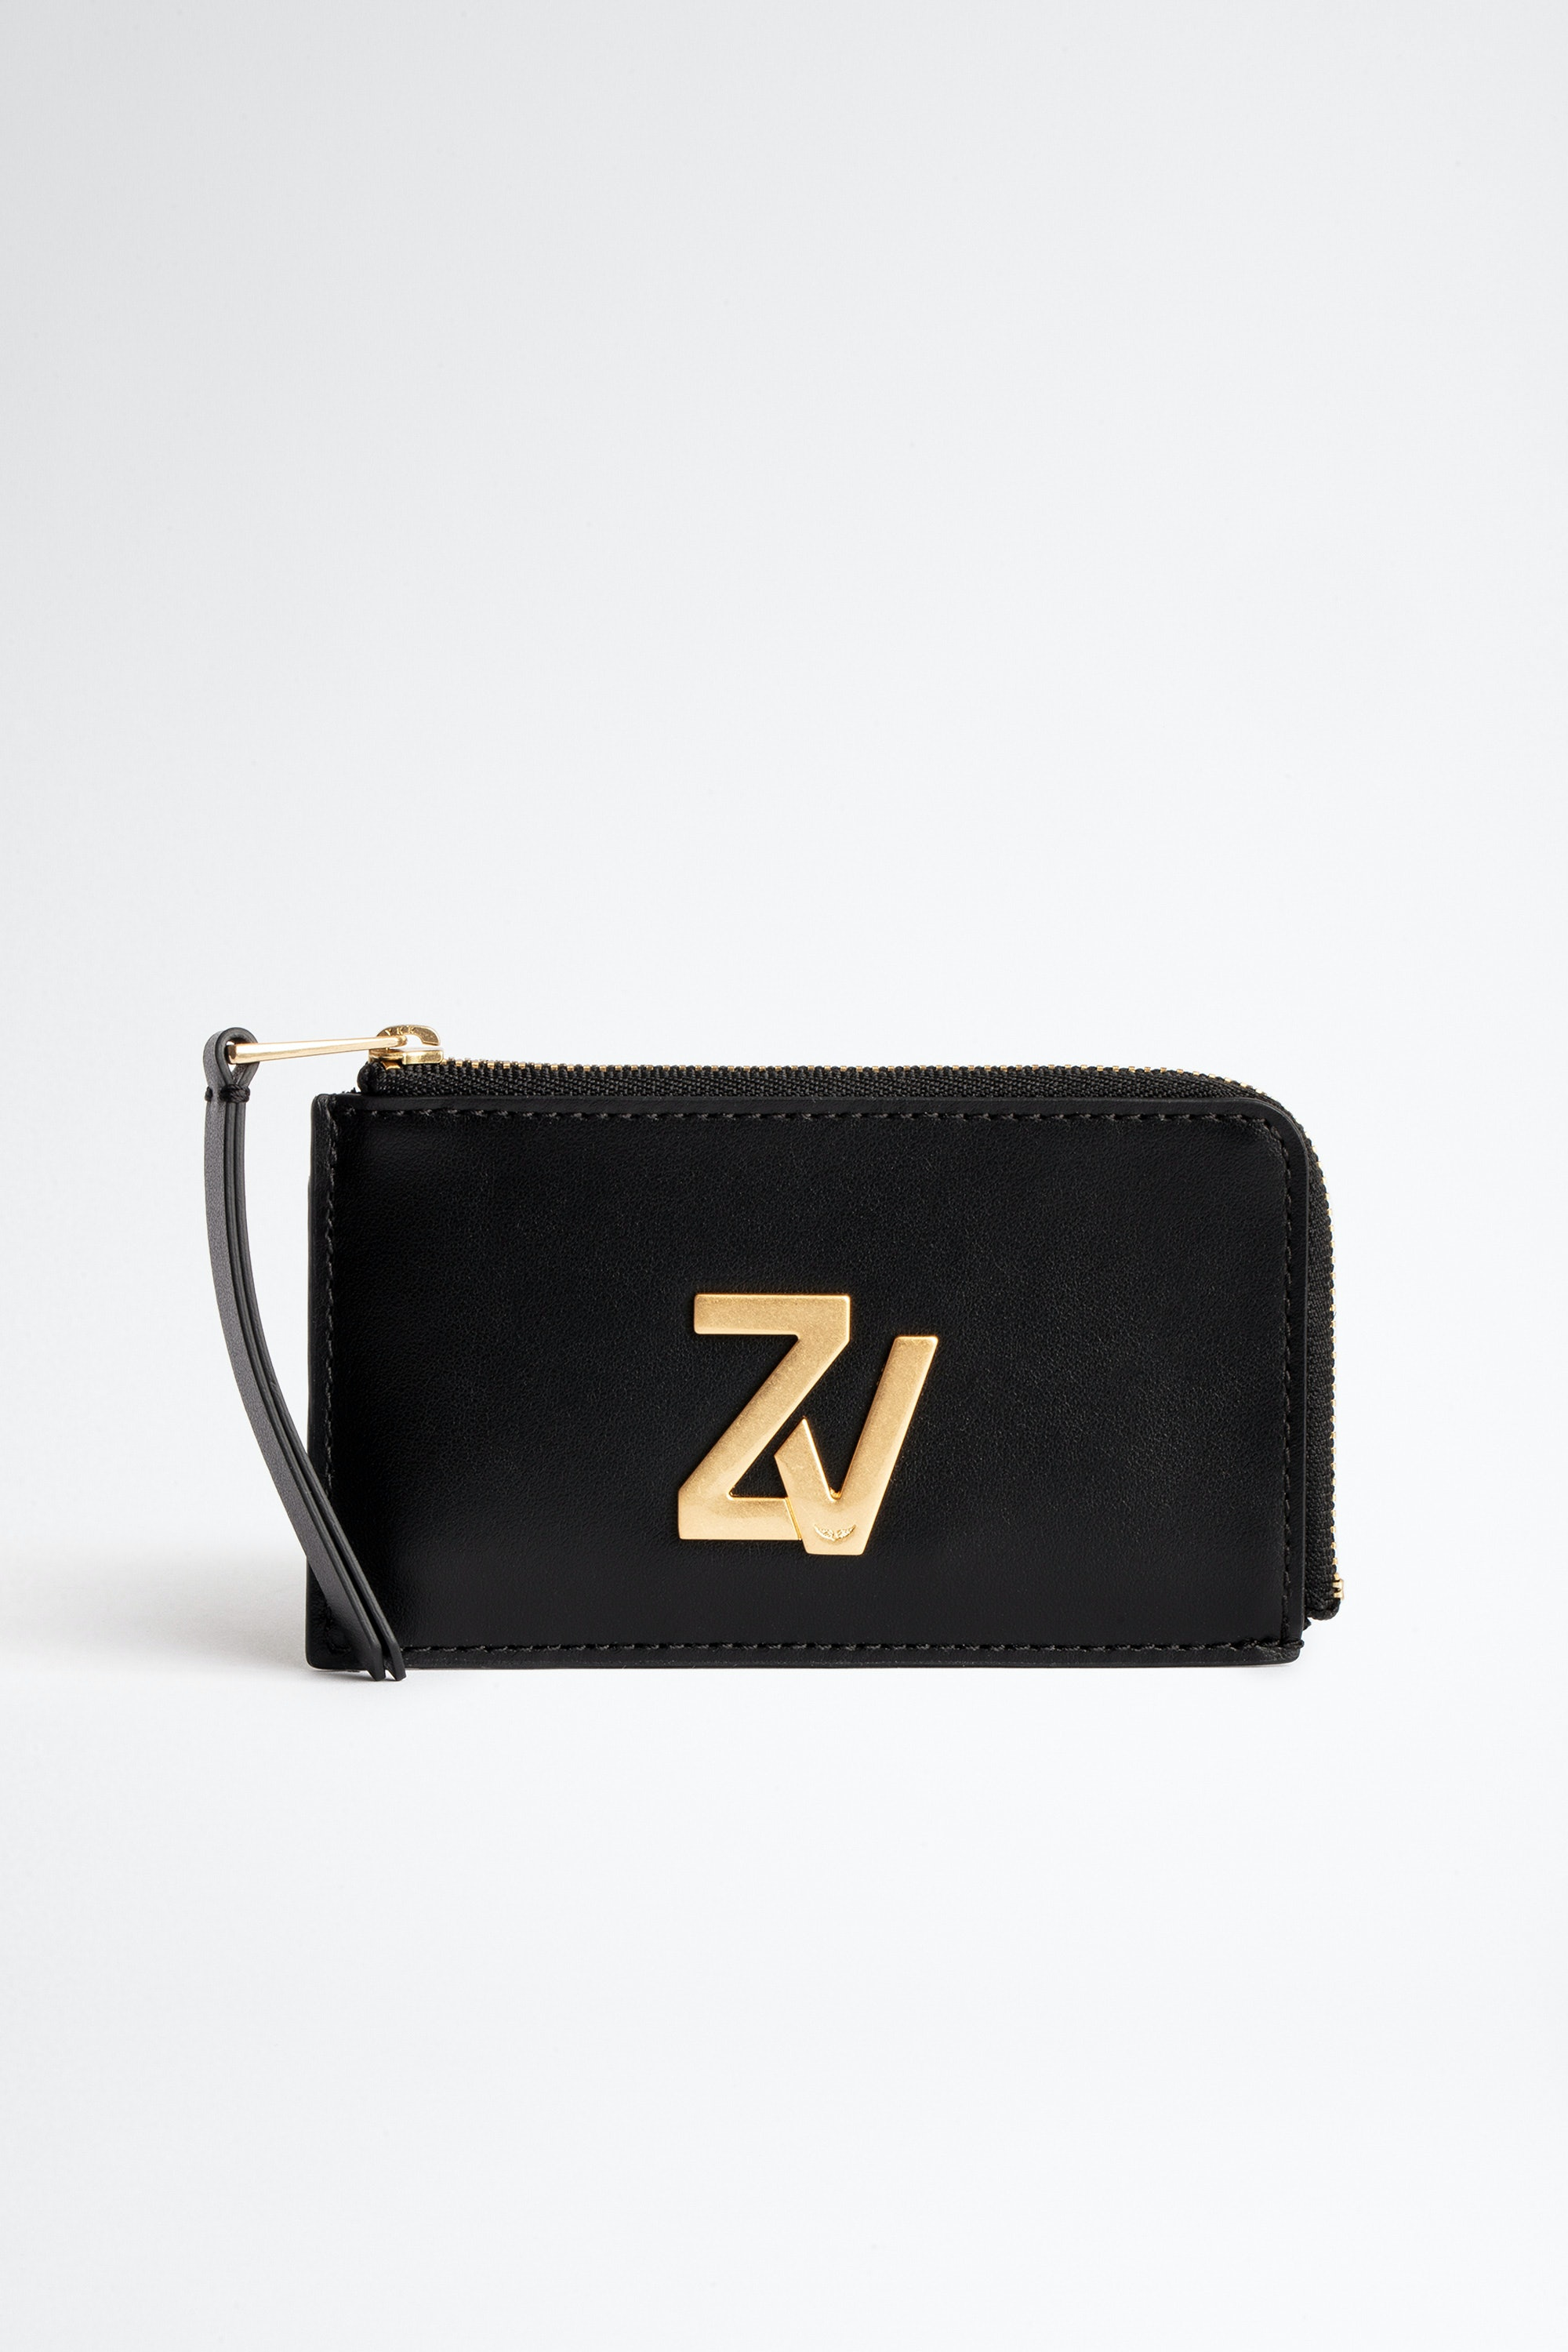 ZV Initiale Le Medium Card Holder